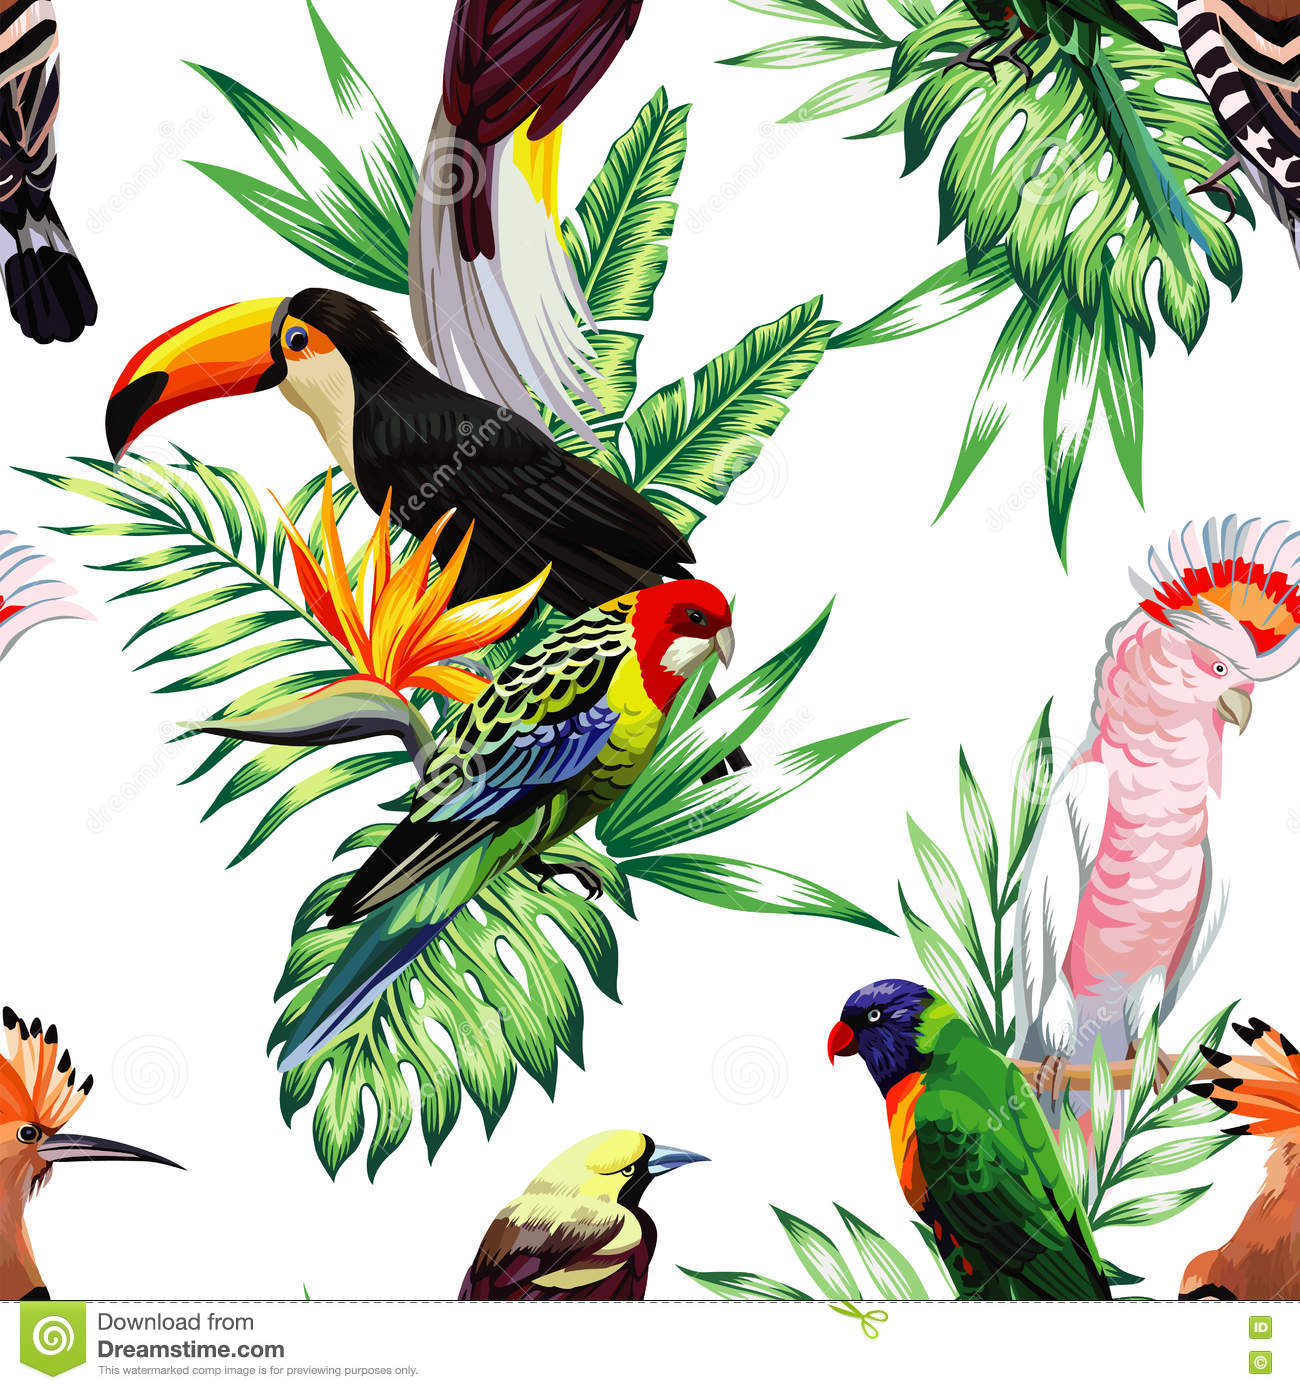 wallpaper tropical birds and foliage - photo #18